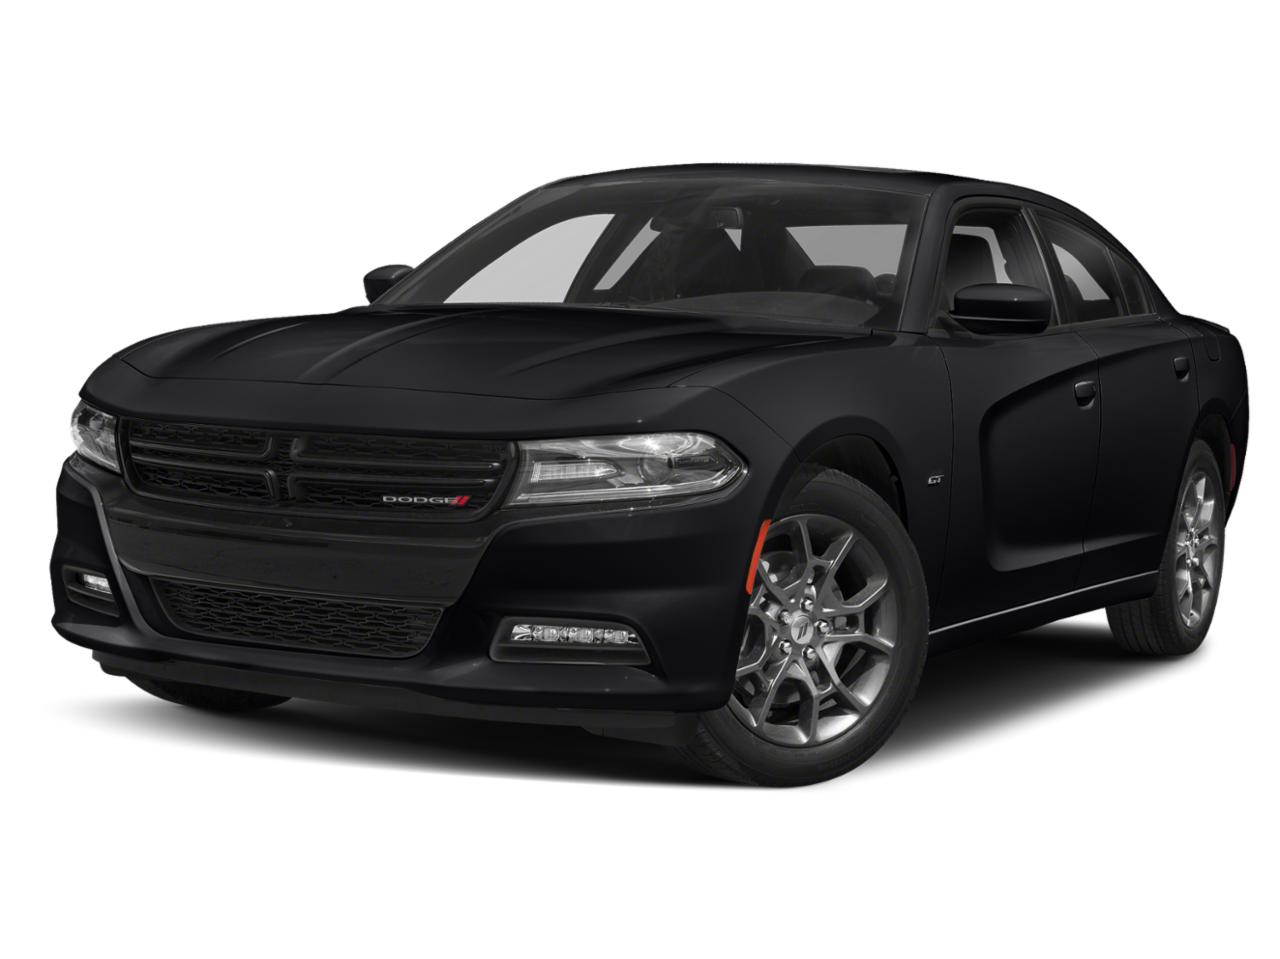 2018 Dodge Charger Vehicle Photo in Hudsonville, MI 49426